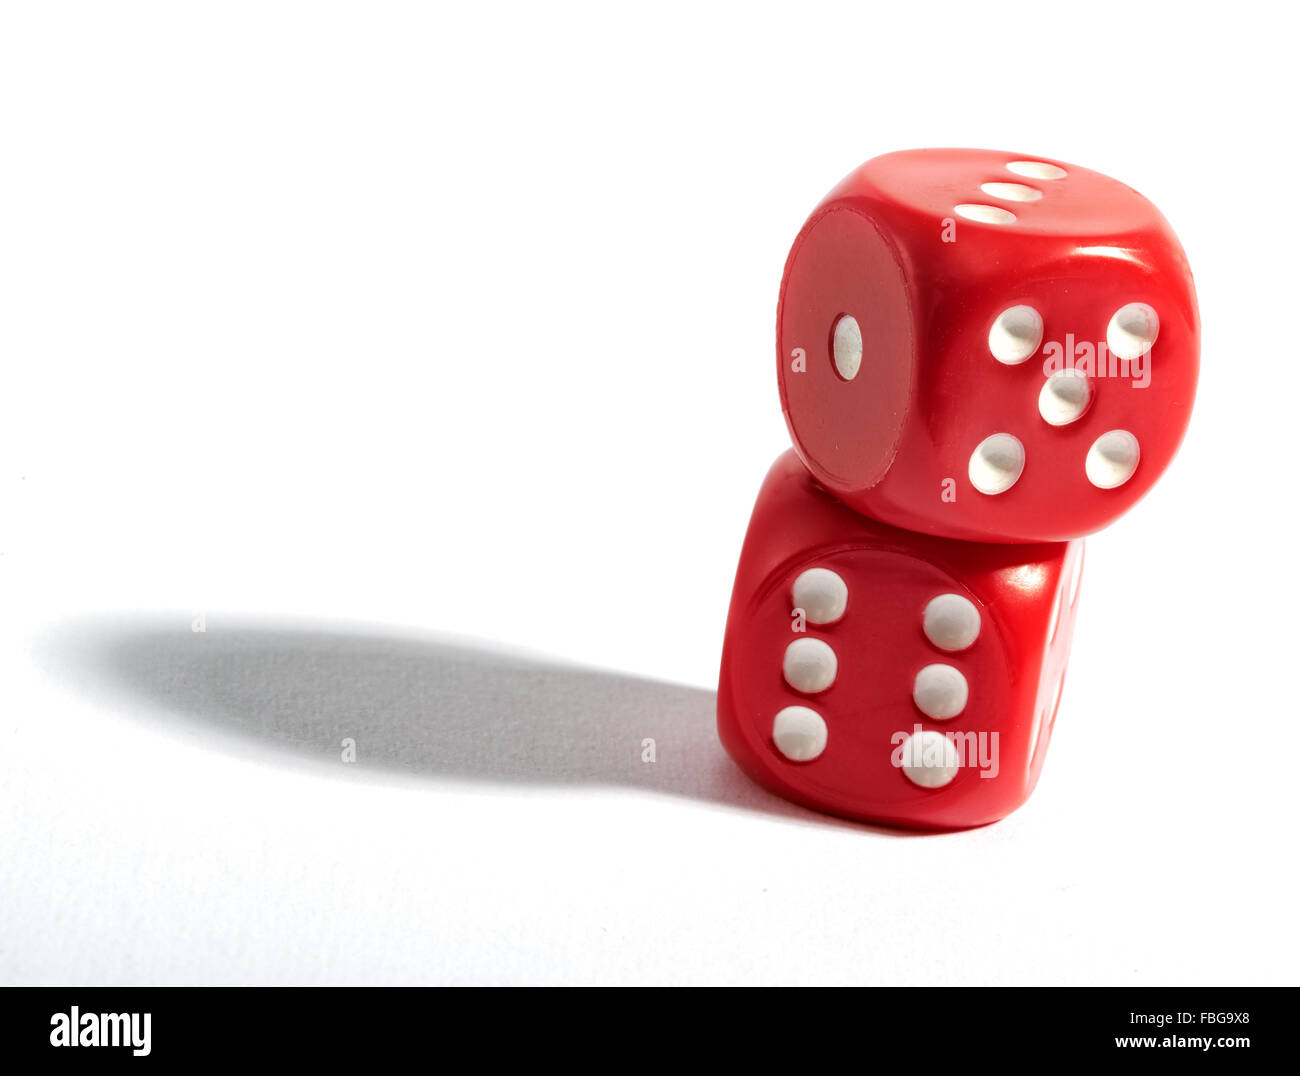 Two plastic red six sided dice stacked on top of each other over white background - Stock Image